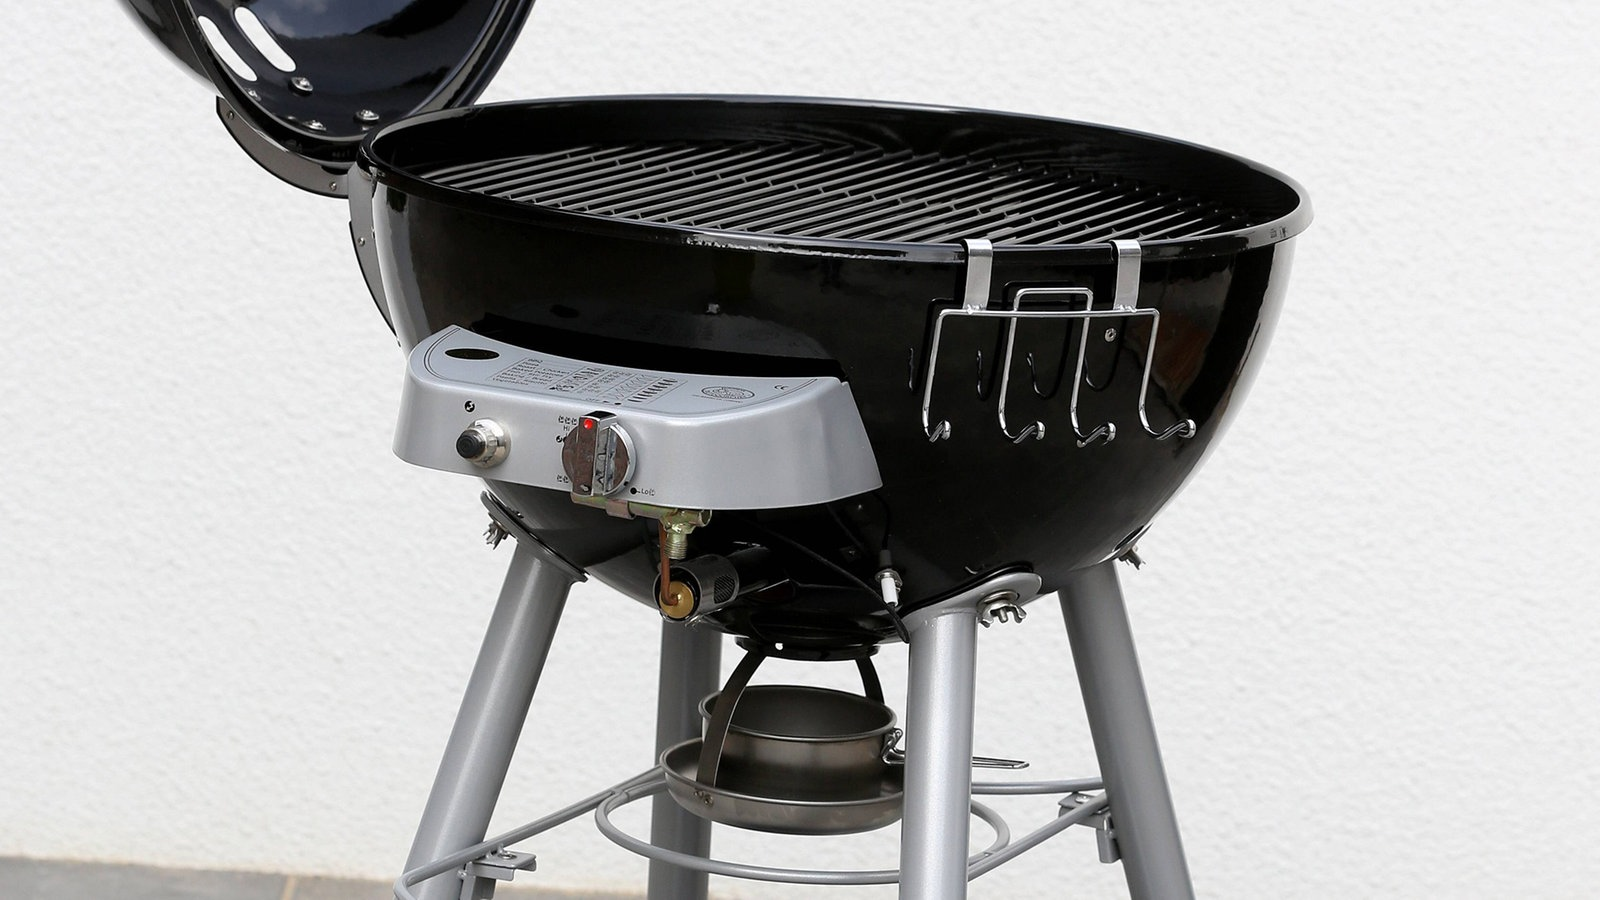 Aldi Holzkohlegrill Uk : Aldi gasgrill flashsms